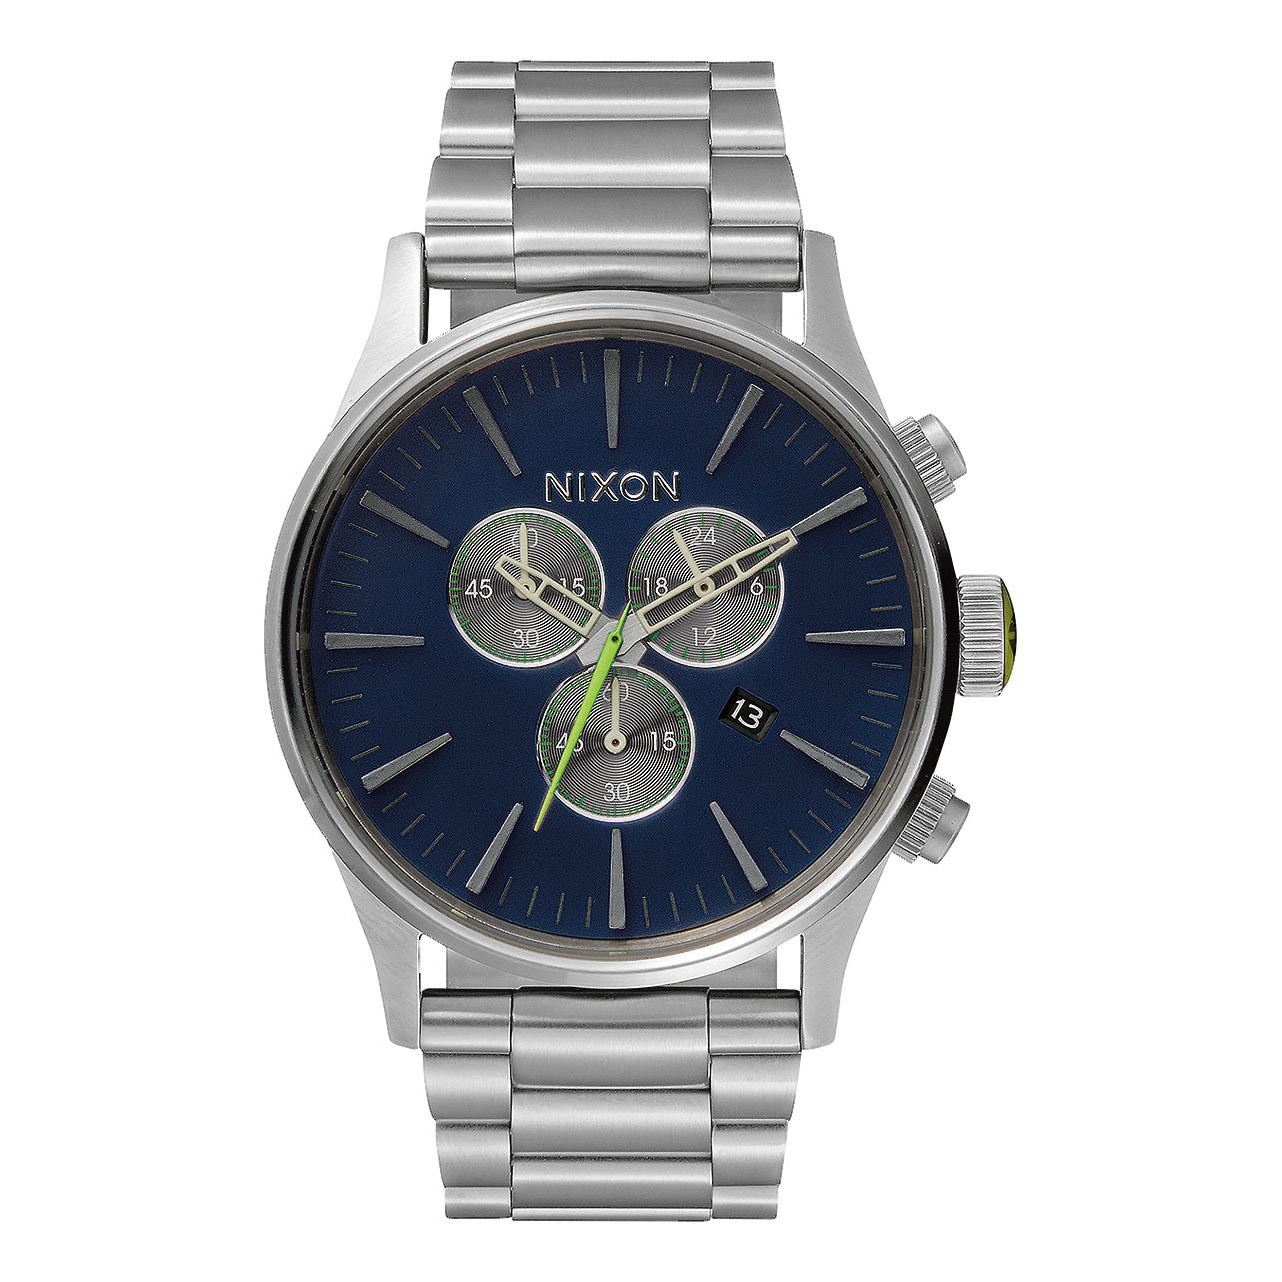 Hodinky Nixon Sentry Chrono midnight blue/volt green